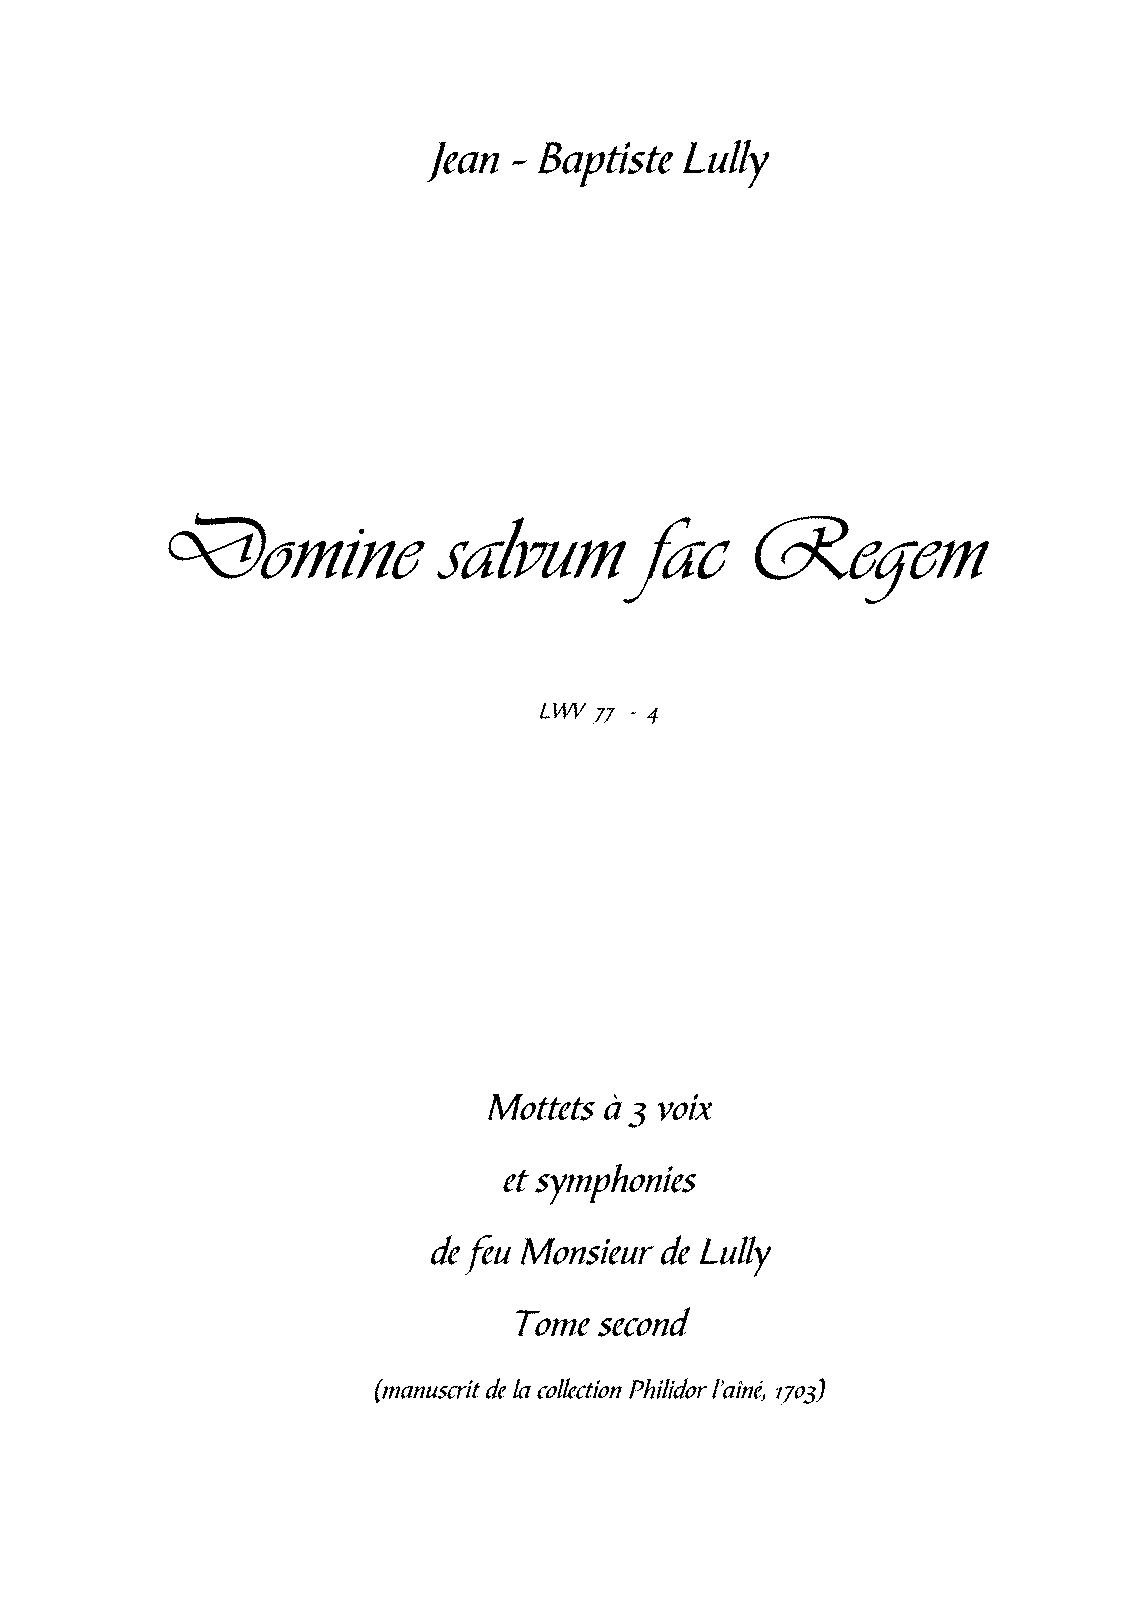 WIMA.4cba-Lully DomineSalvum.pdf